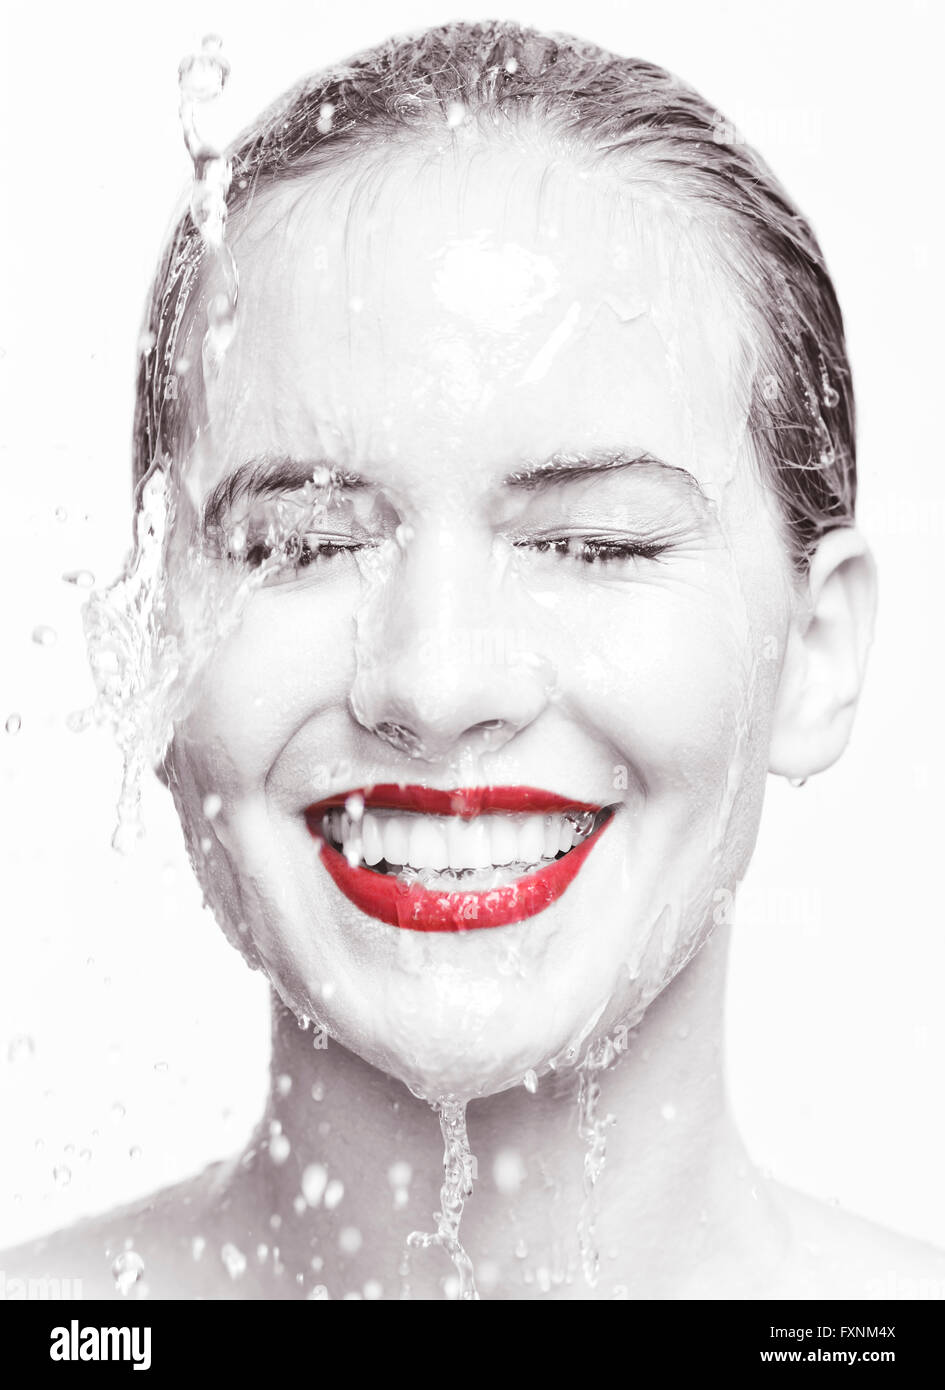 Smiling woman's face with red lipstick with water running over it - Stock Image